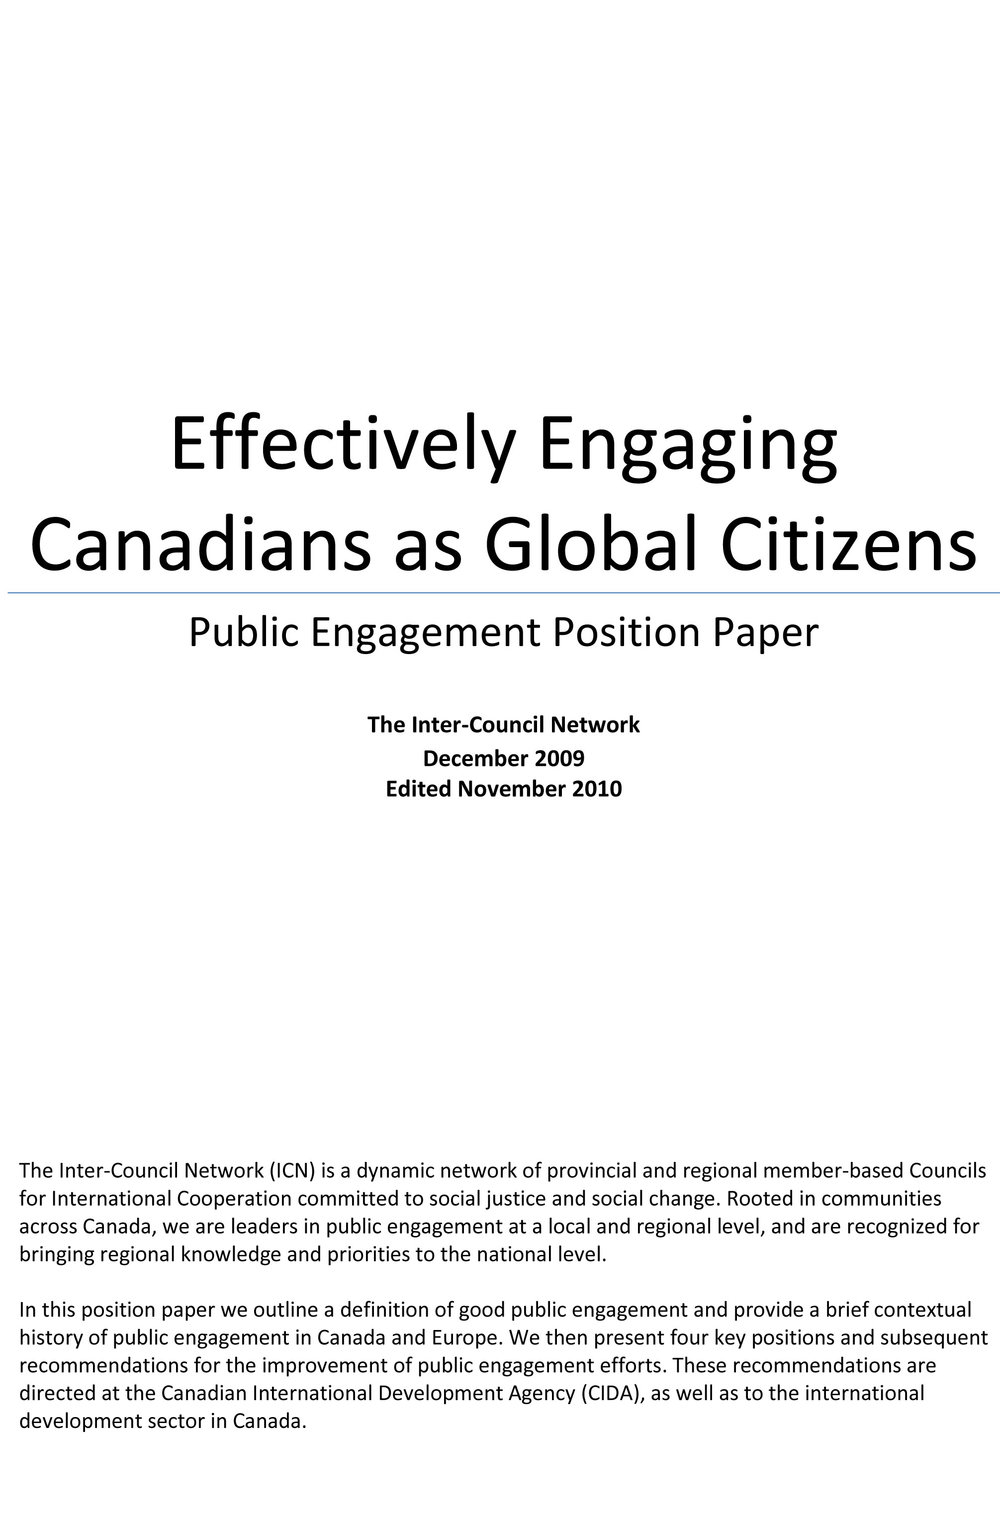 Effectively Engaging Canadians as Global Citizens: Public Engagement Position Paper